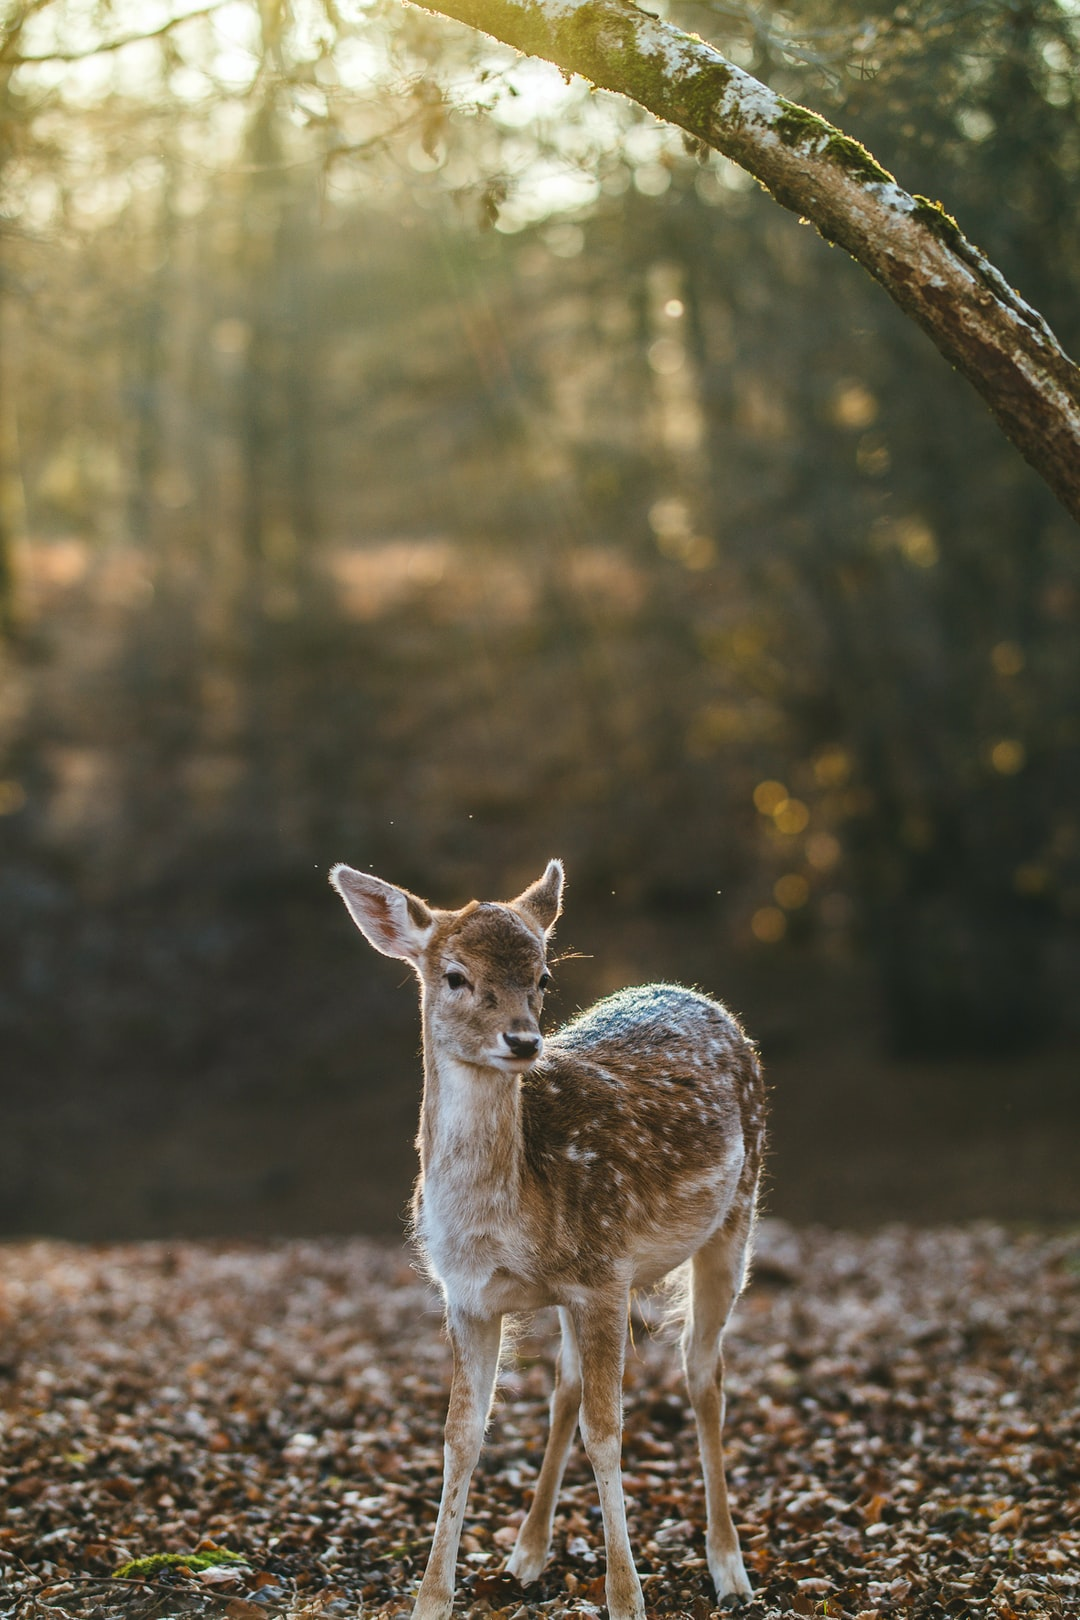 500 Baby Deer Pictures Hd Download Free Images On Unsplash